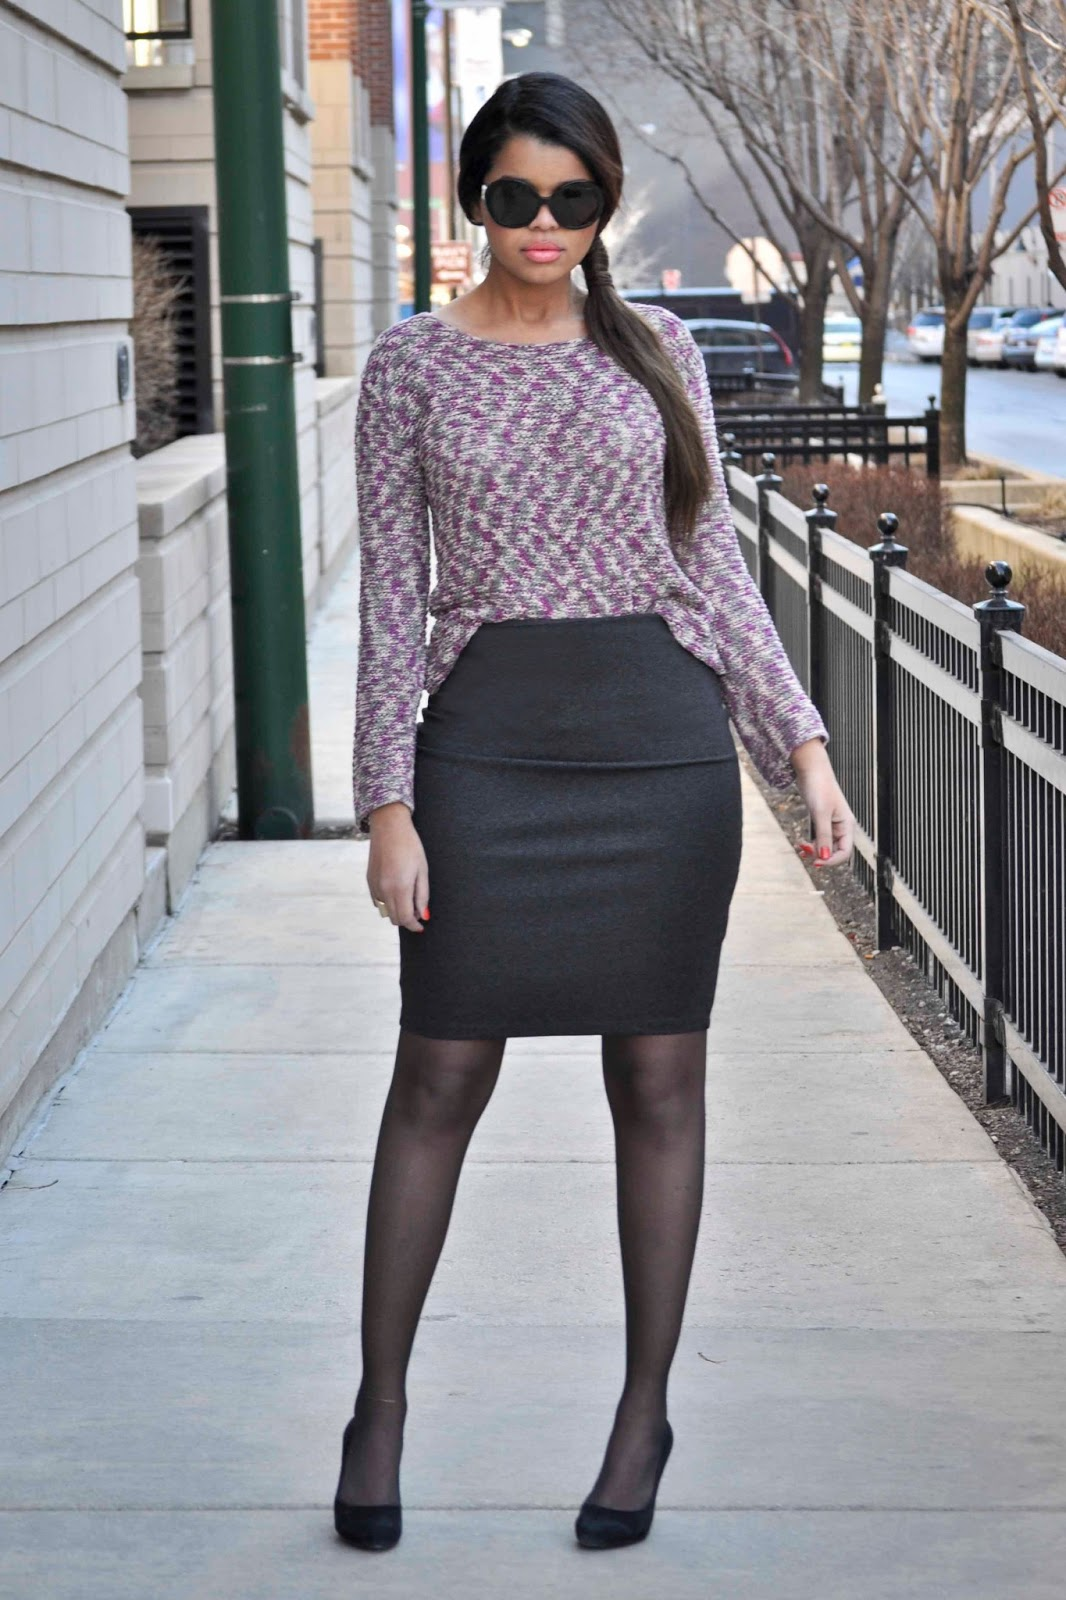 pencil skirt and images